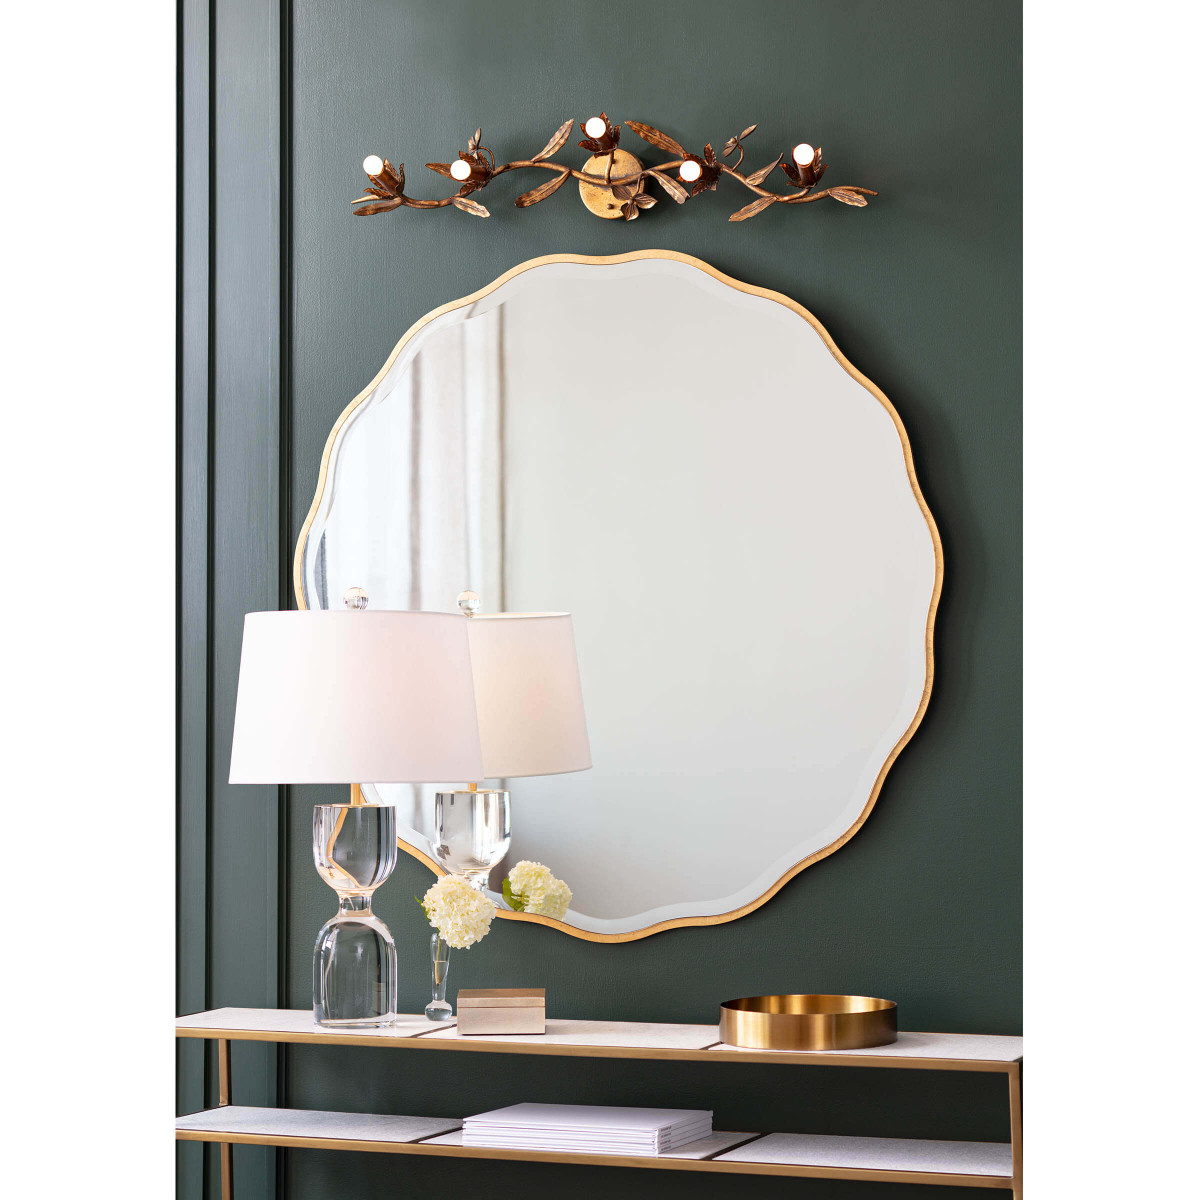 beveled edge mirror against emerald green wall